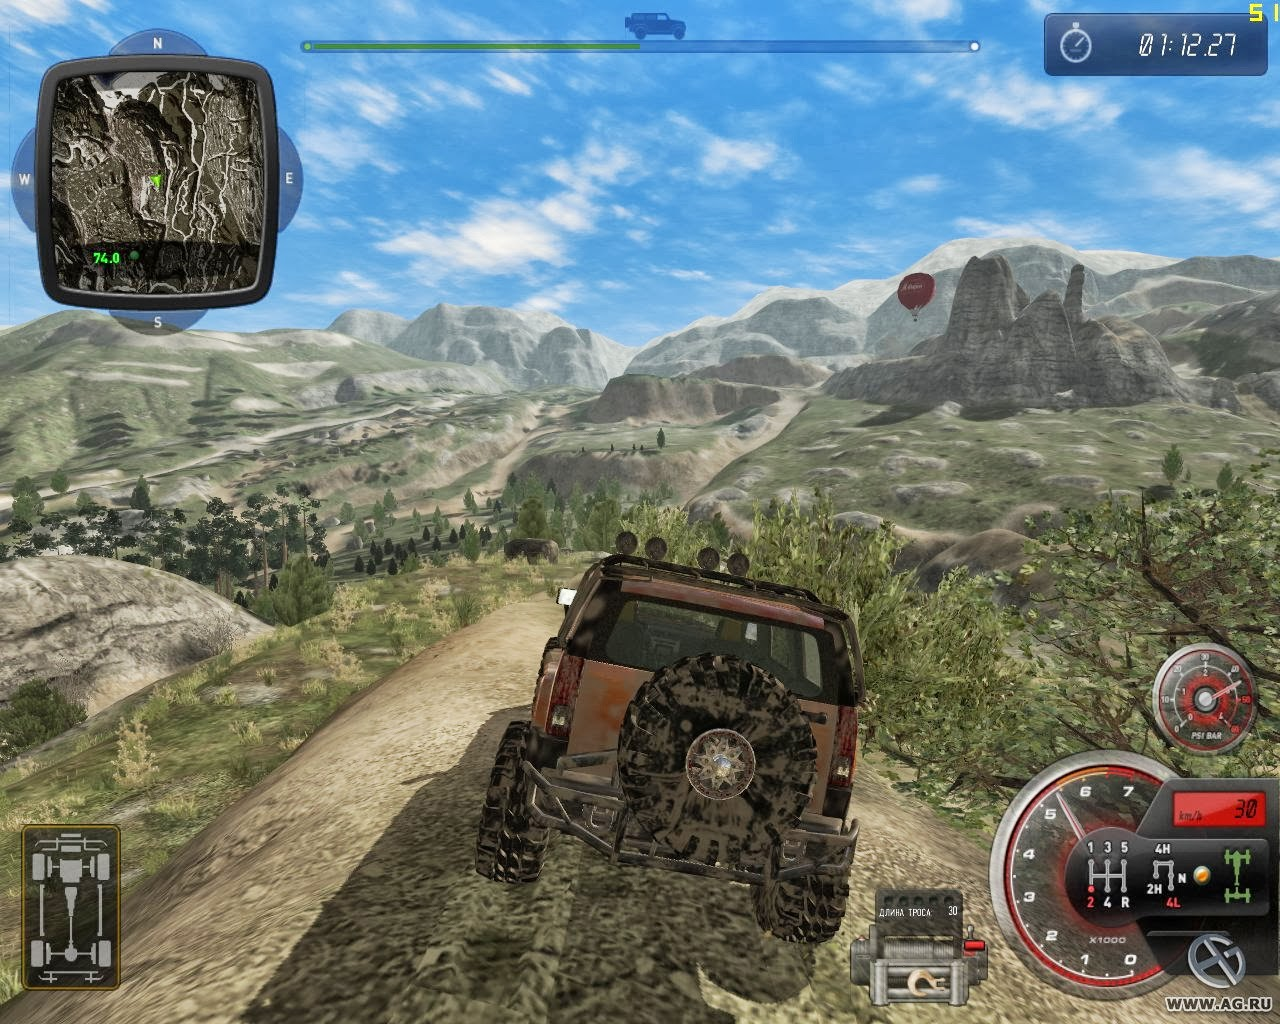 All Games And s: Download 4x4 Hummer 2012 PC Racing Game